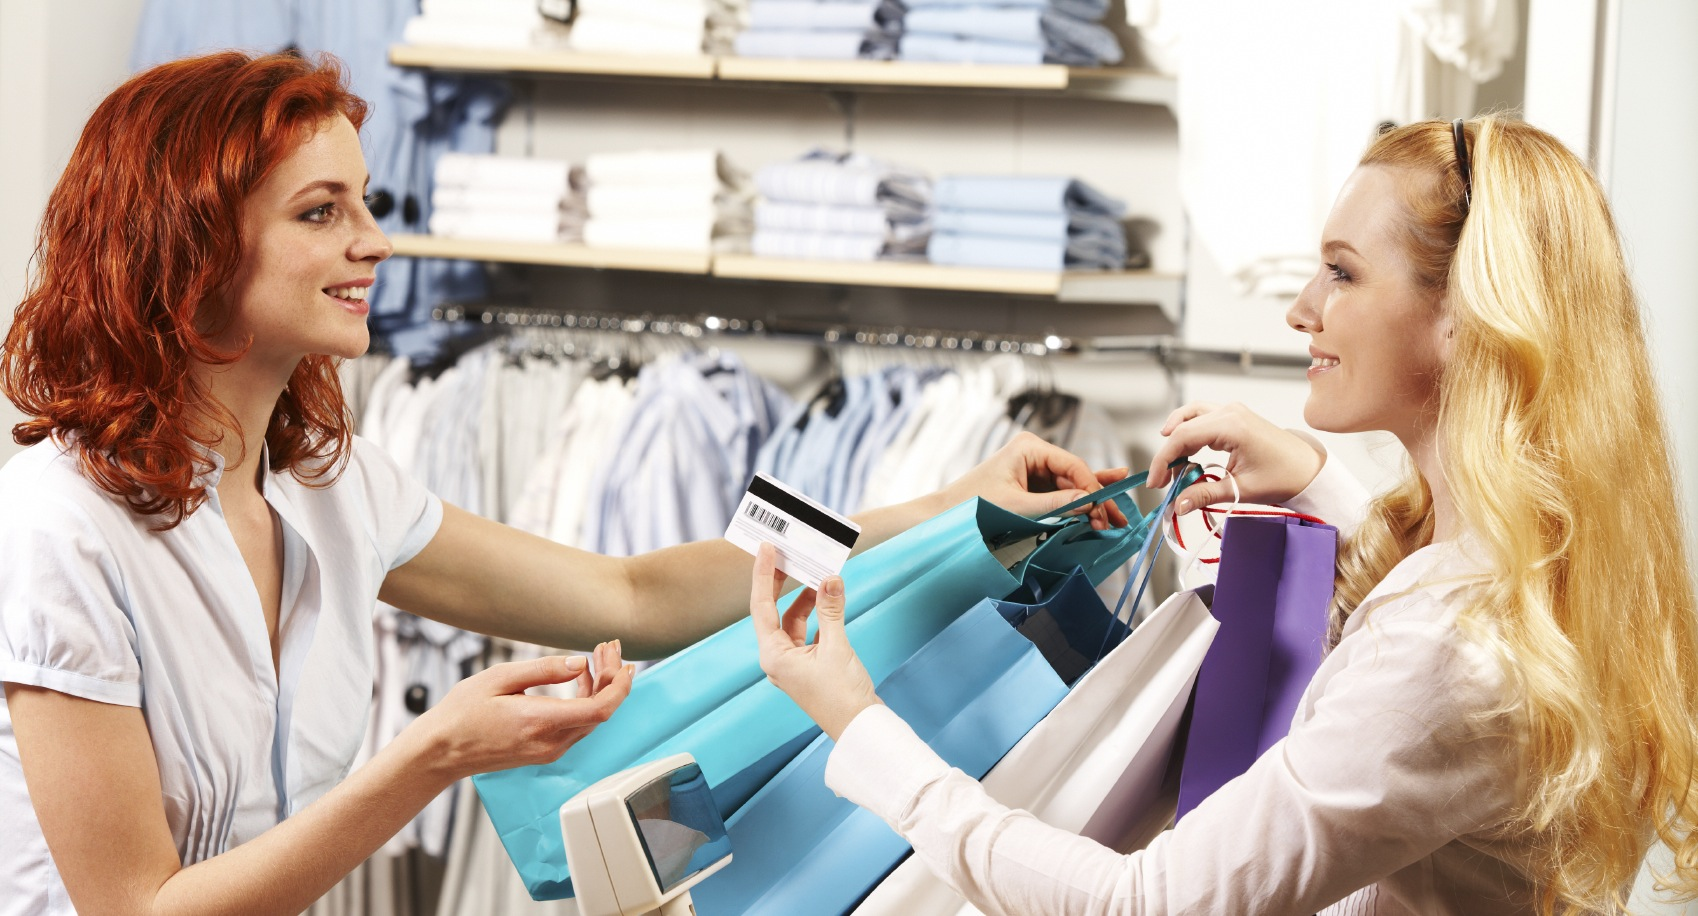 reasons for holiday shopping in stores the happy shopper istock 000011171300 medium